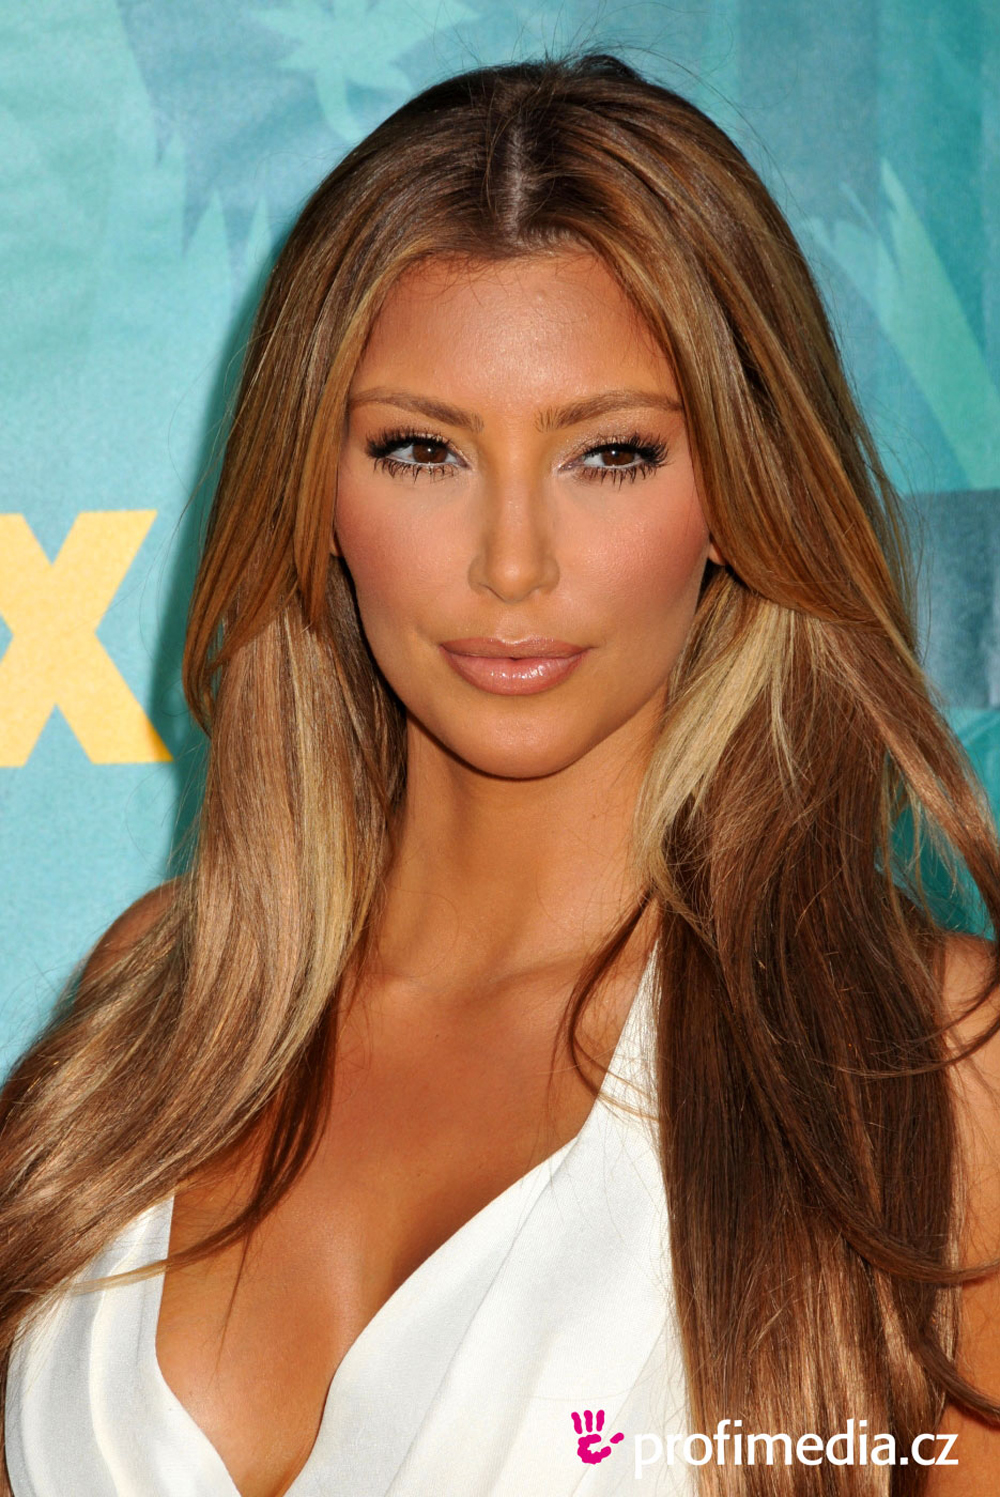 Celebrities Hair and Hairstyles: Kim Kardashian Hair Color